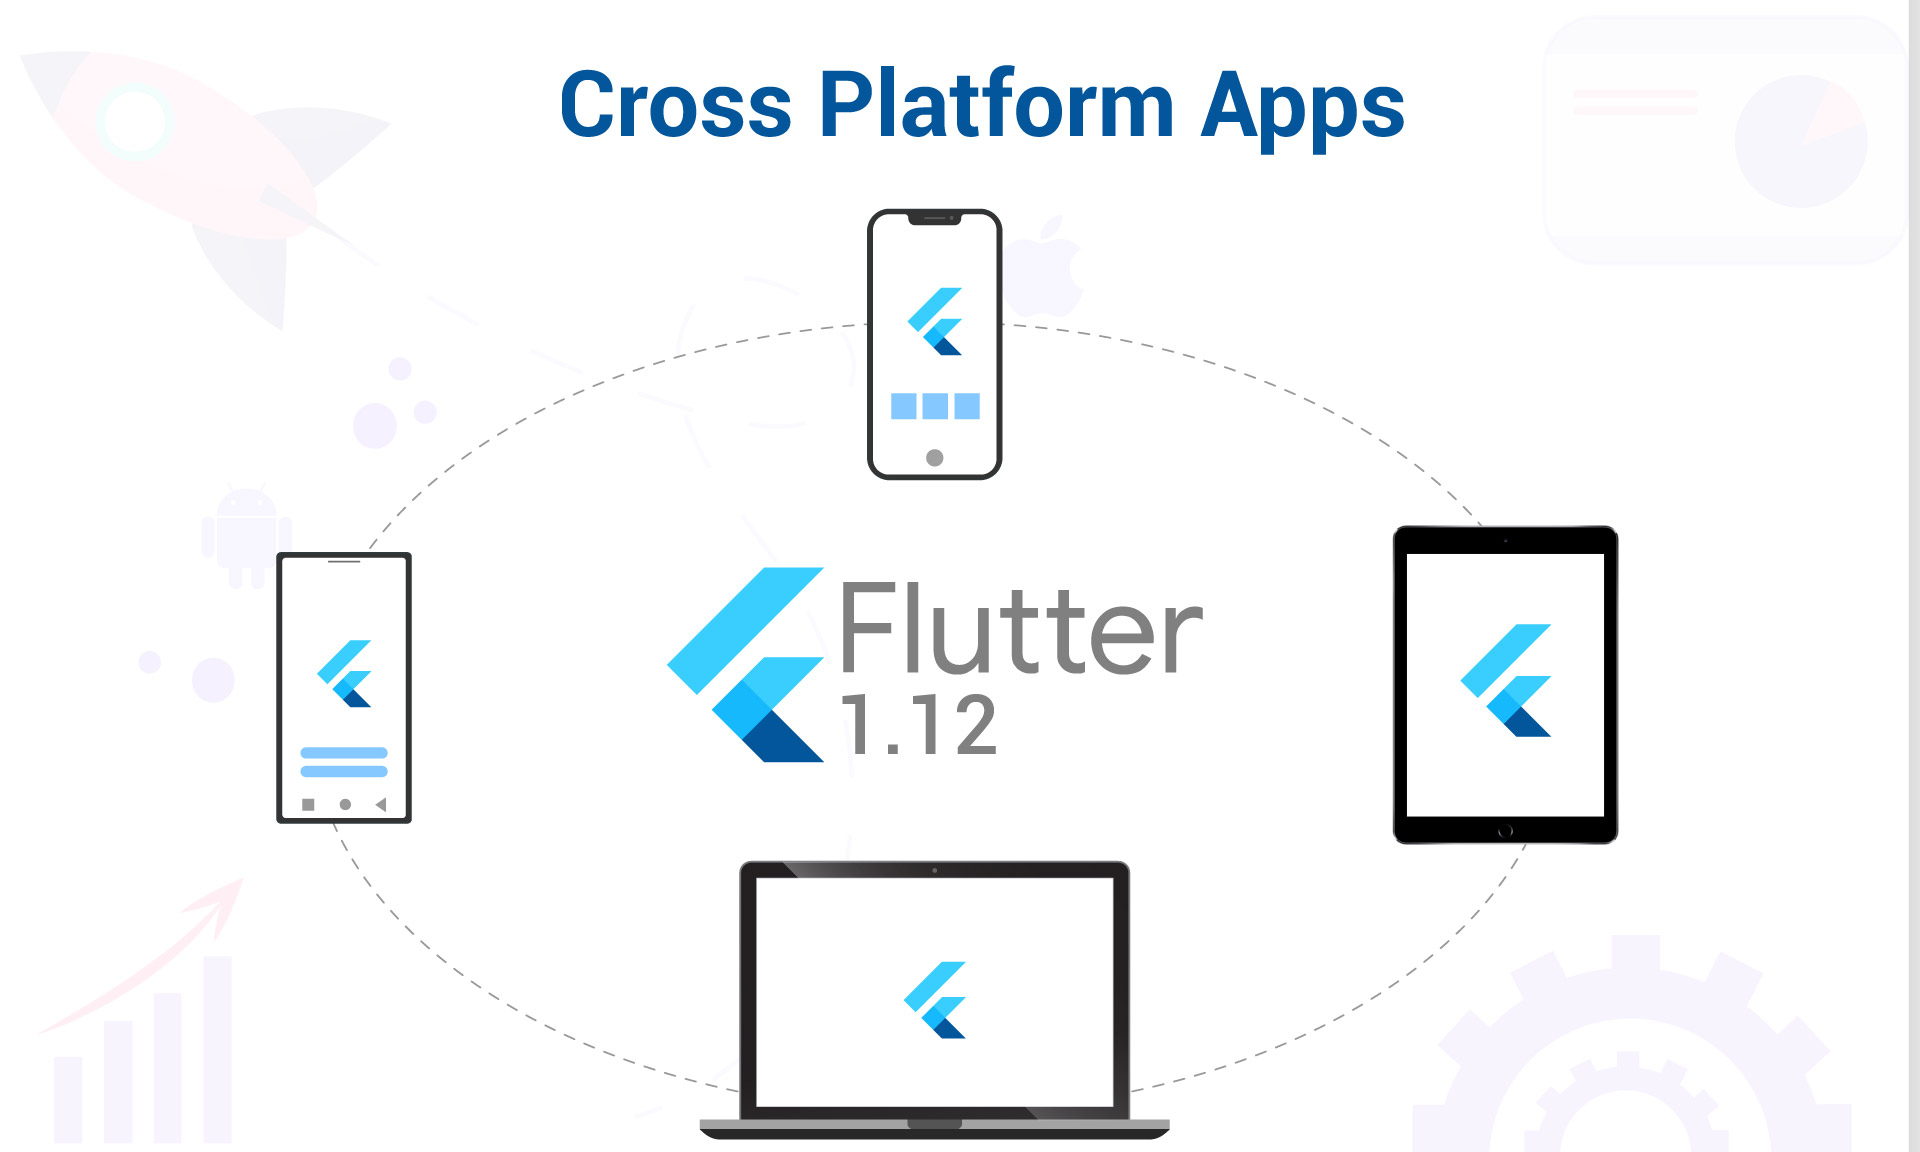 Flutter for Cross Platform Development